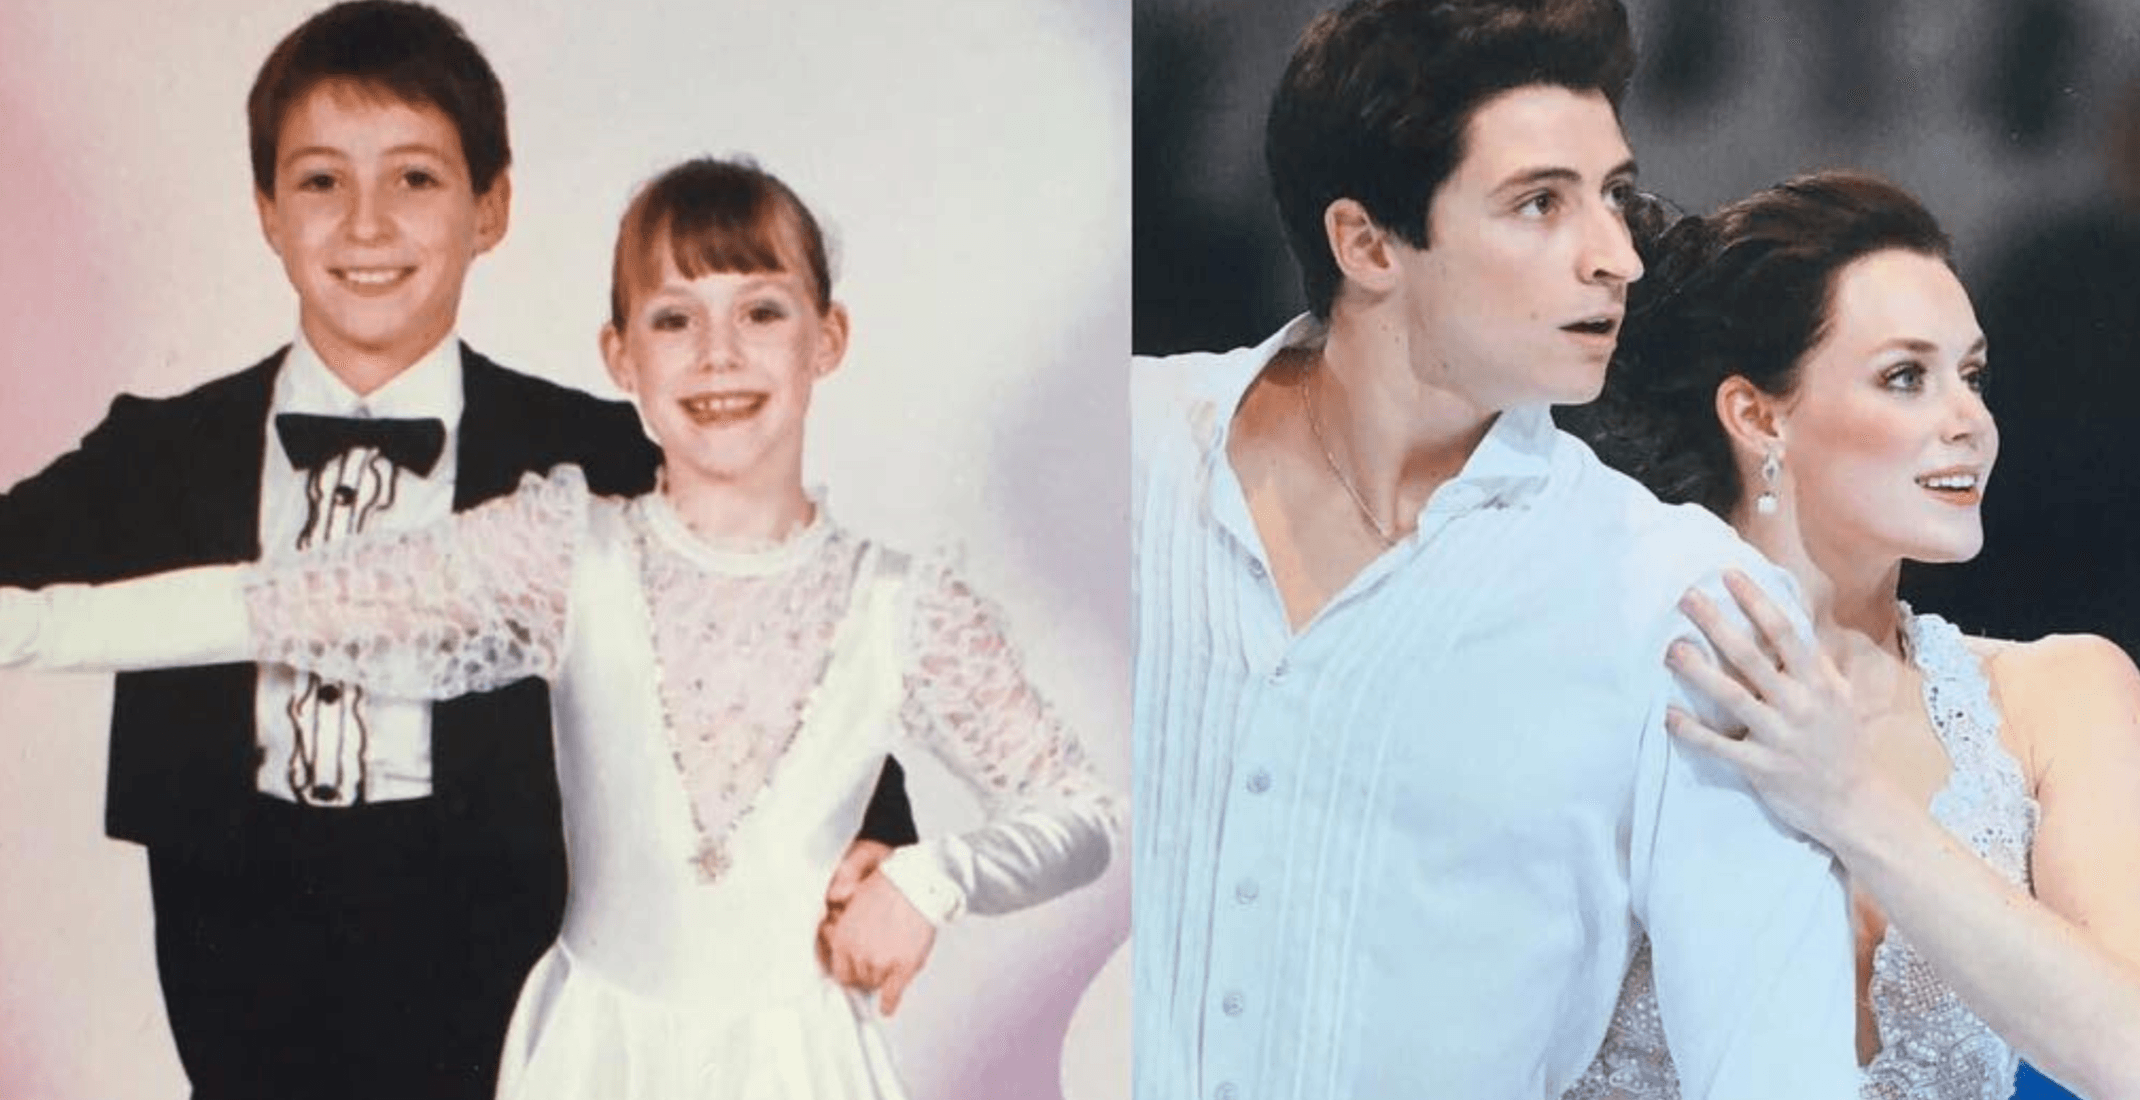 These throwback pictures of Tessa Virtue and Scott Moir skating together as kids are adorable